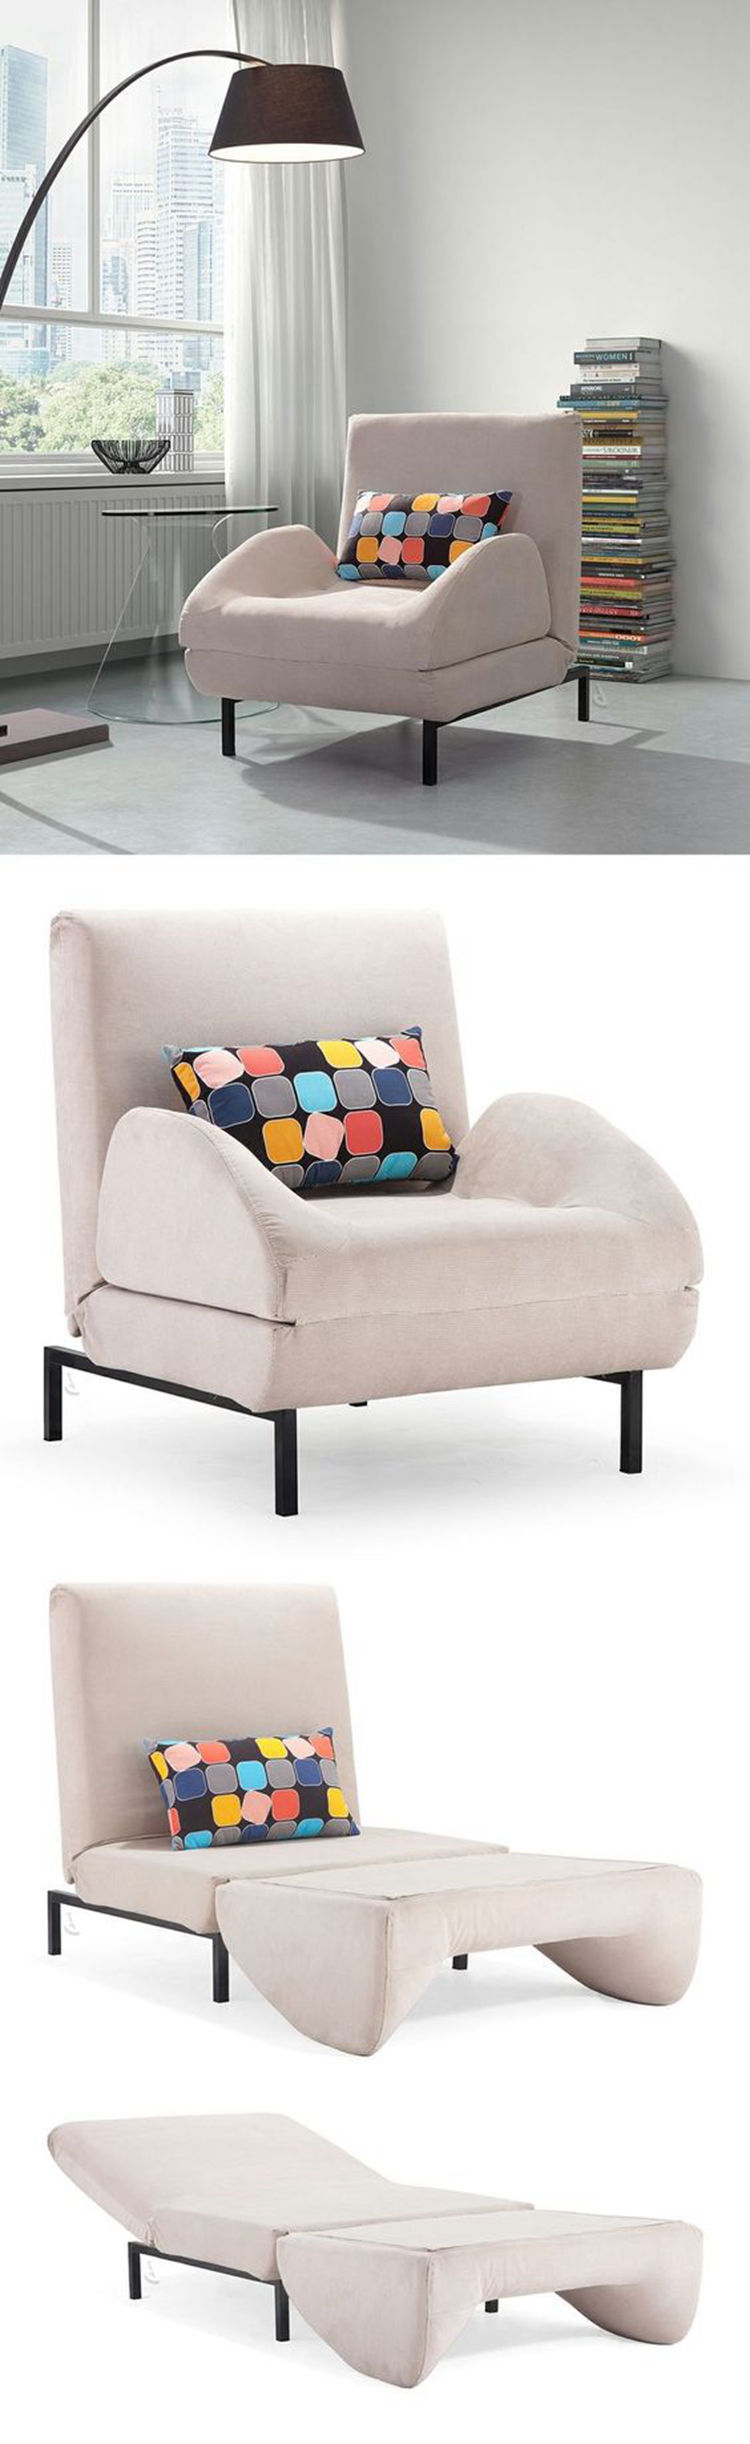 multi-functional single seater fabric sofa chairs, living room space saving  folding sofa cum